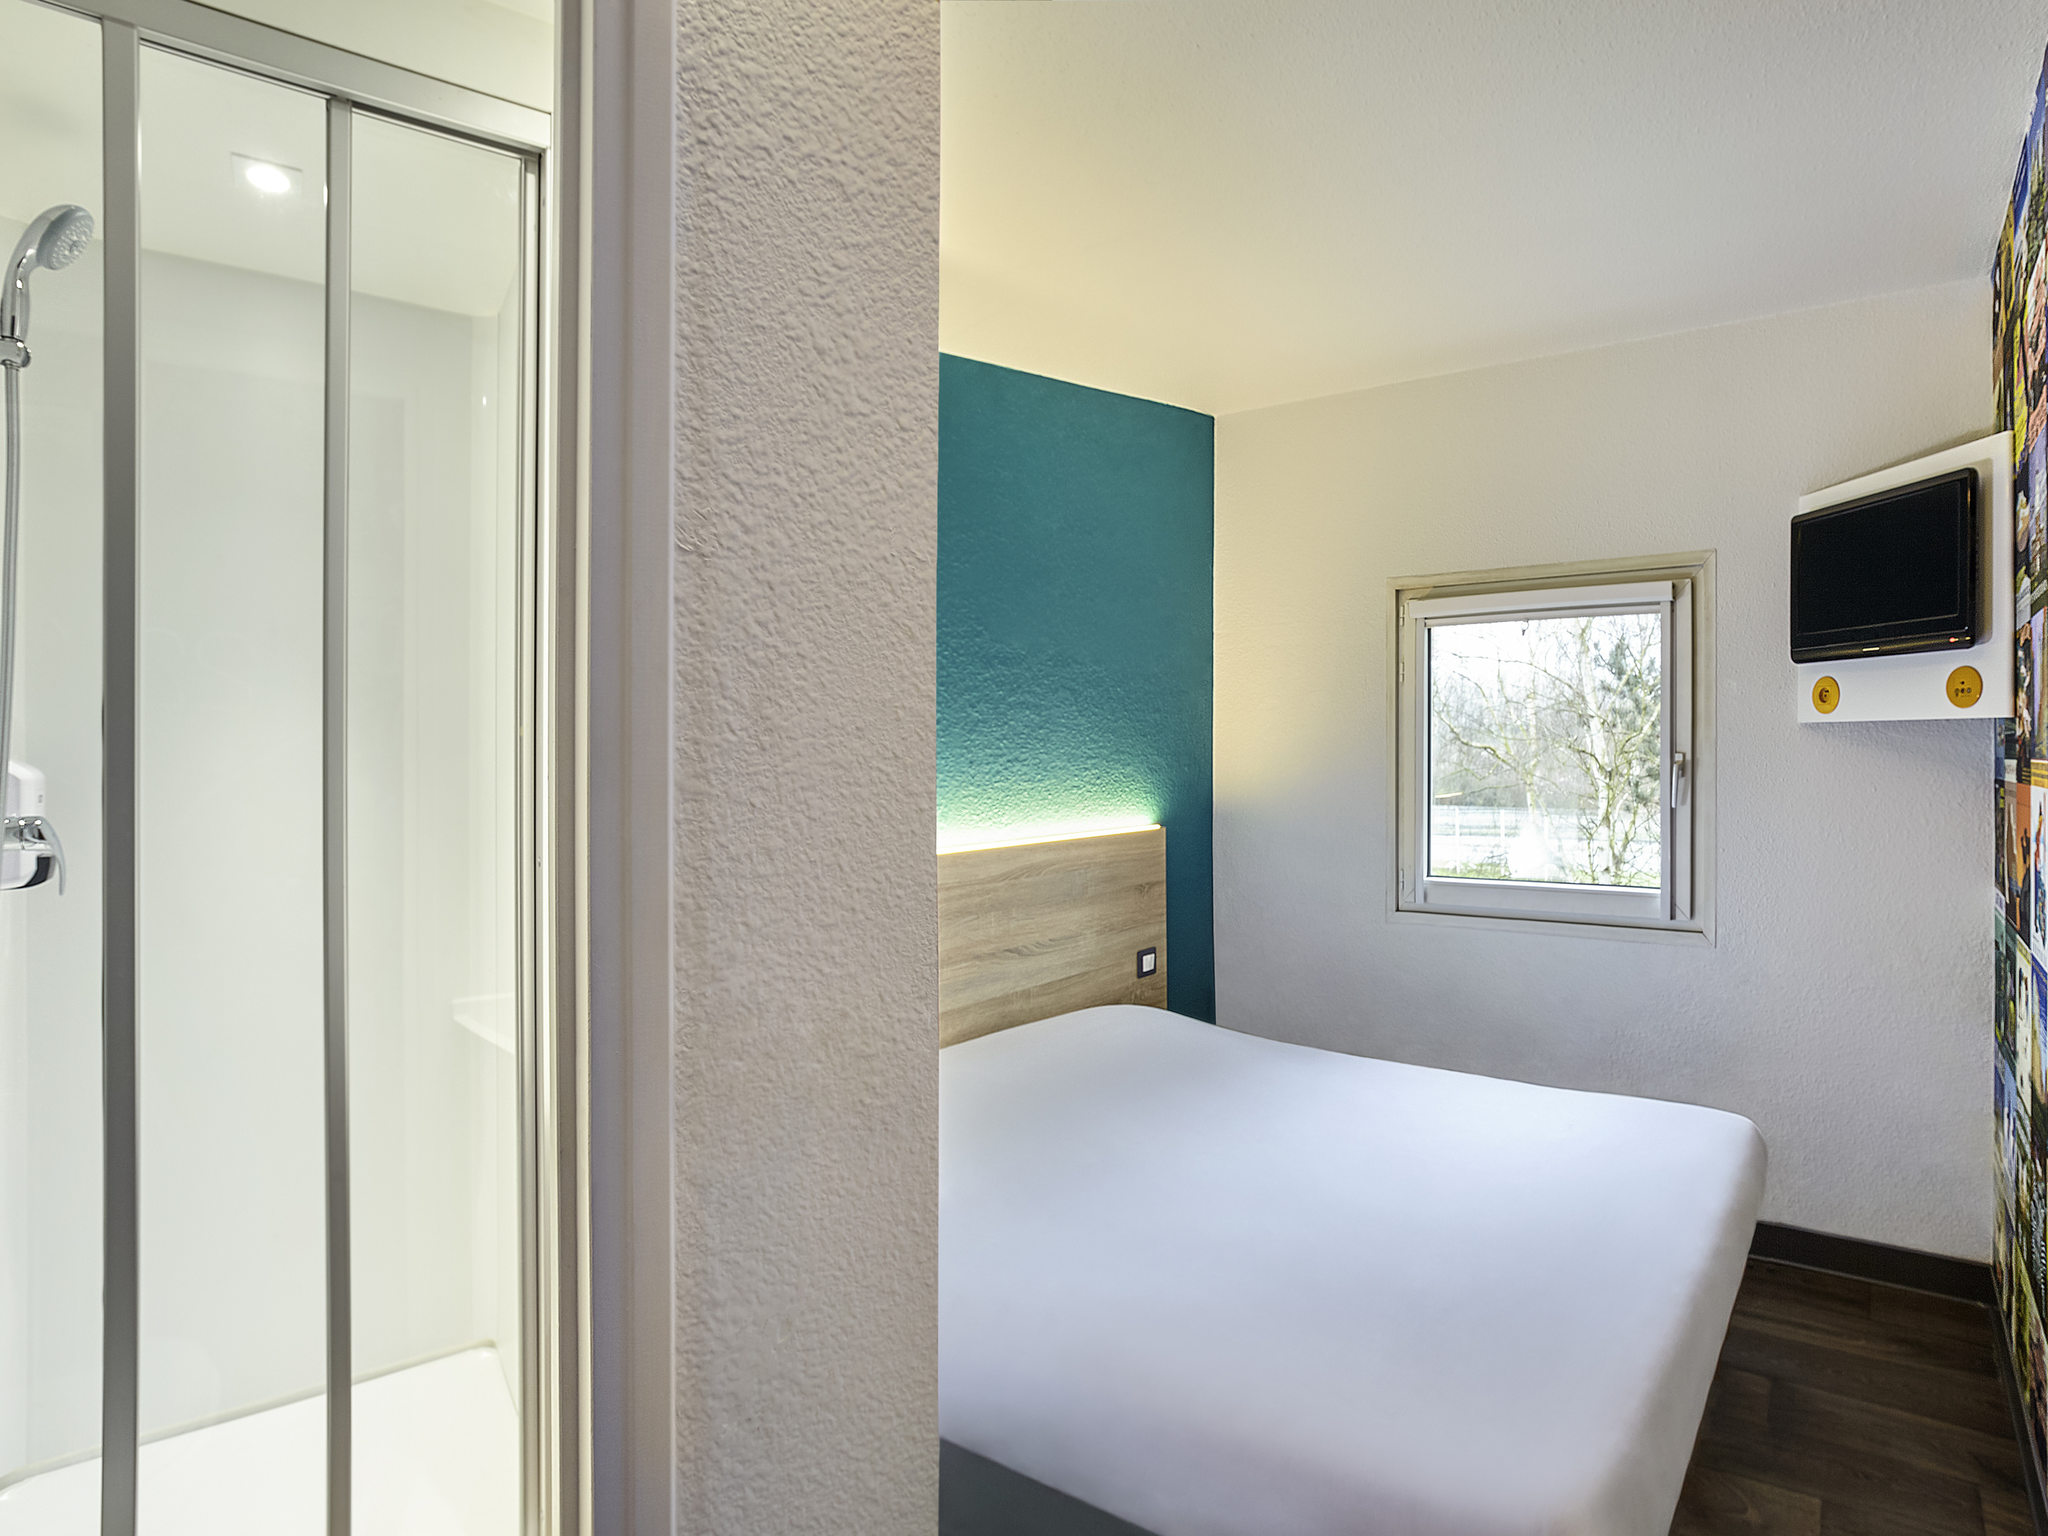 hotel in chasseneuil du poitou hotelf1 poitiers nord. Black Bedroom Furniture Sets. Home Design Ideas